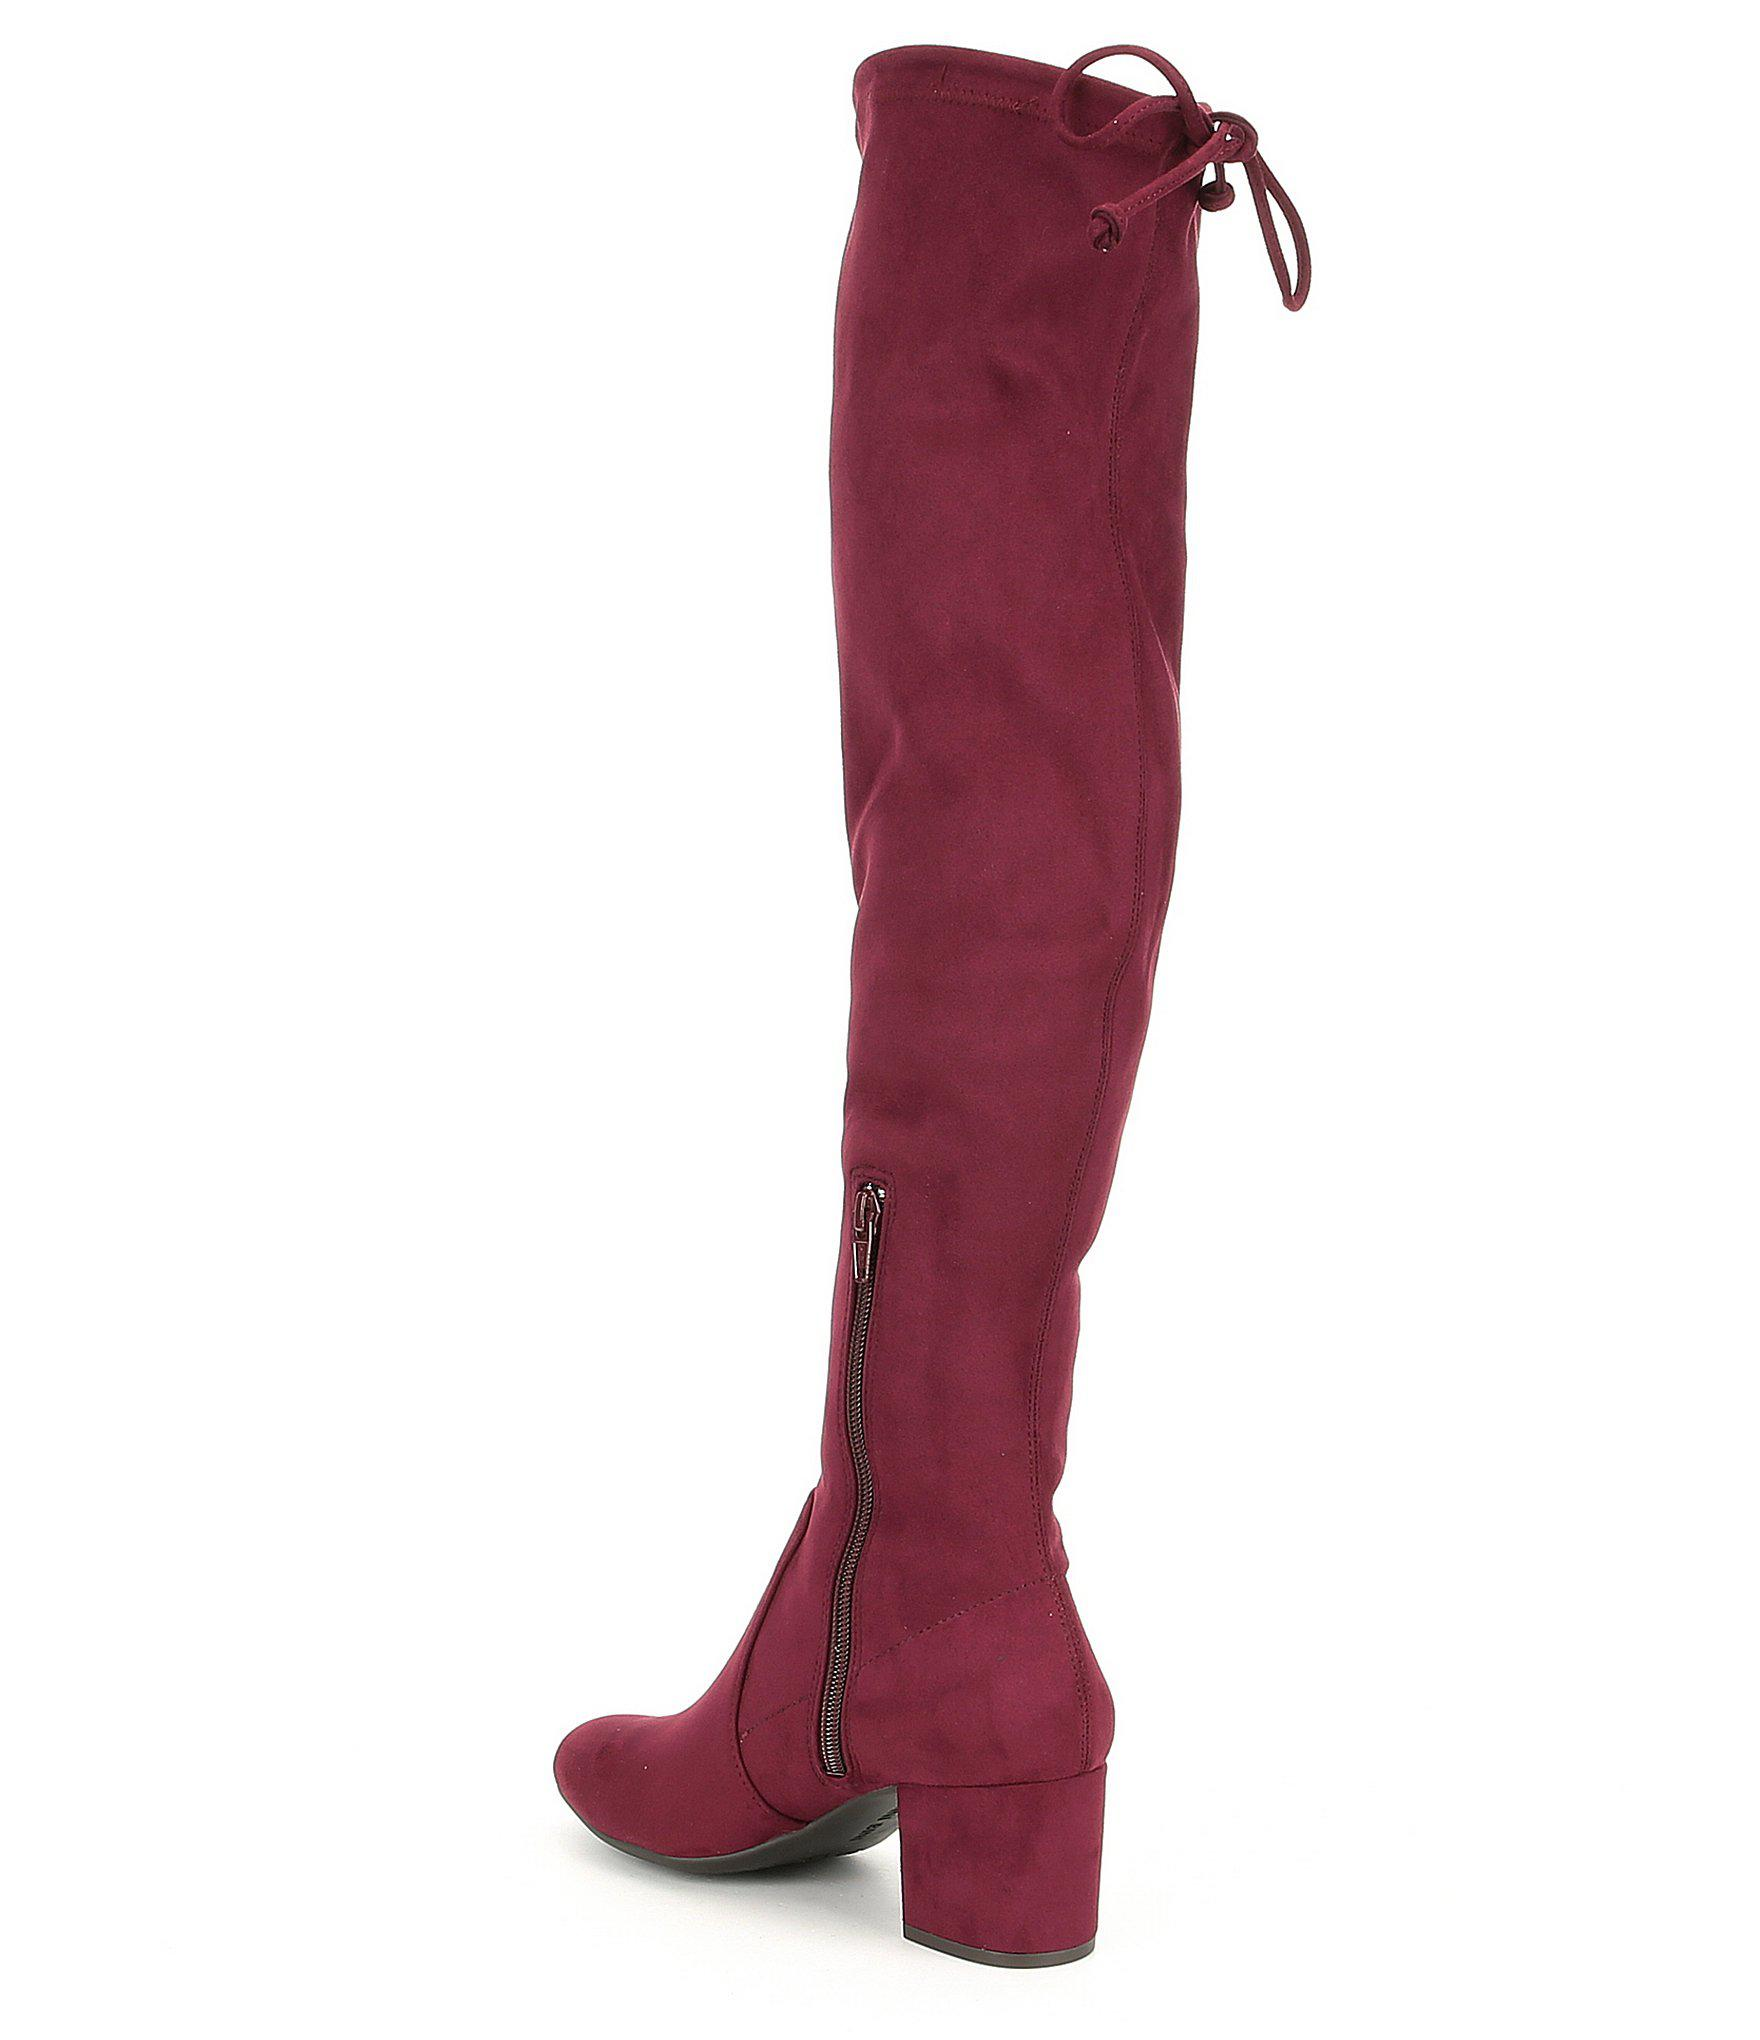 e9f729ad48a Lyst - Gianni Bini Trillia Block Heel Stretch Over The Knee Boots in Red